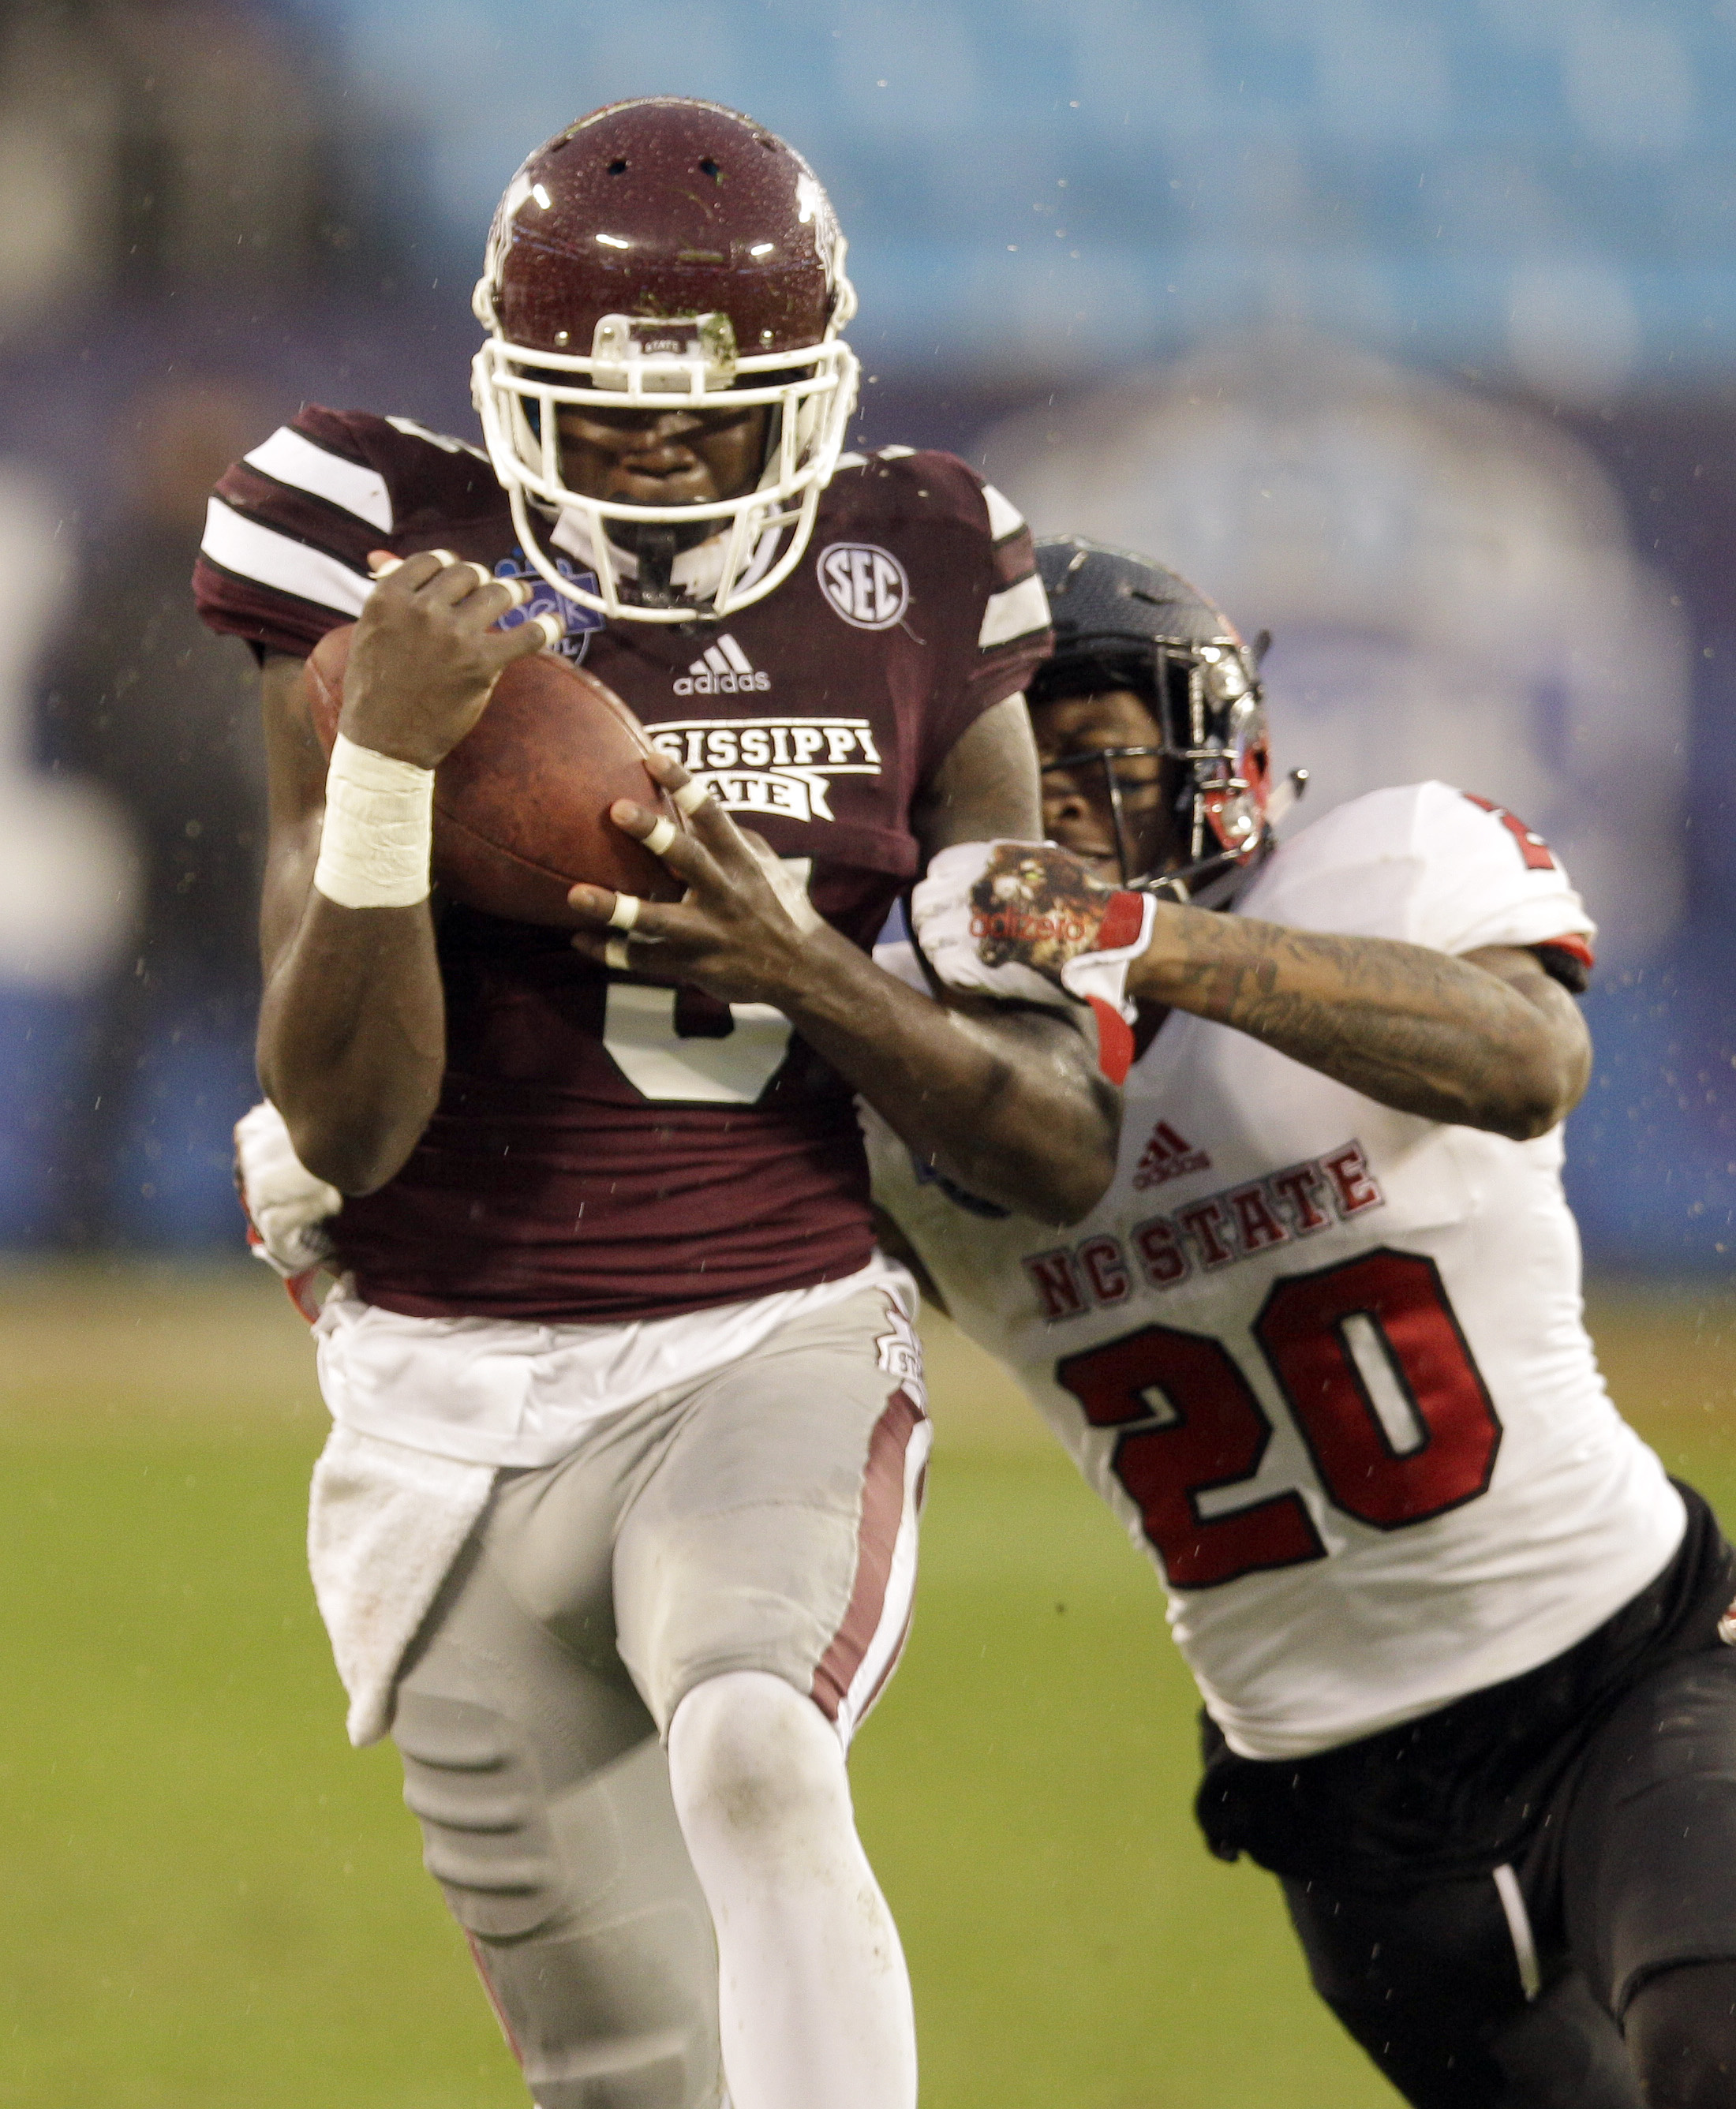 Mississippi State wide receiver Fred Brown (5) catches a pass as North Carolina State cornerback Mike Stevens (20) defends in the first half of the Belk Bowl NCAA college football game in Charlotte, N.C., Wednesday, Dec. 30, 2015. (AP Photo/Nell Redmond)